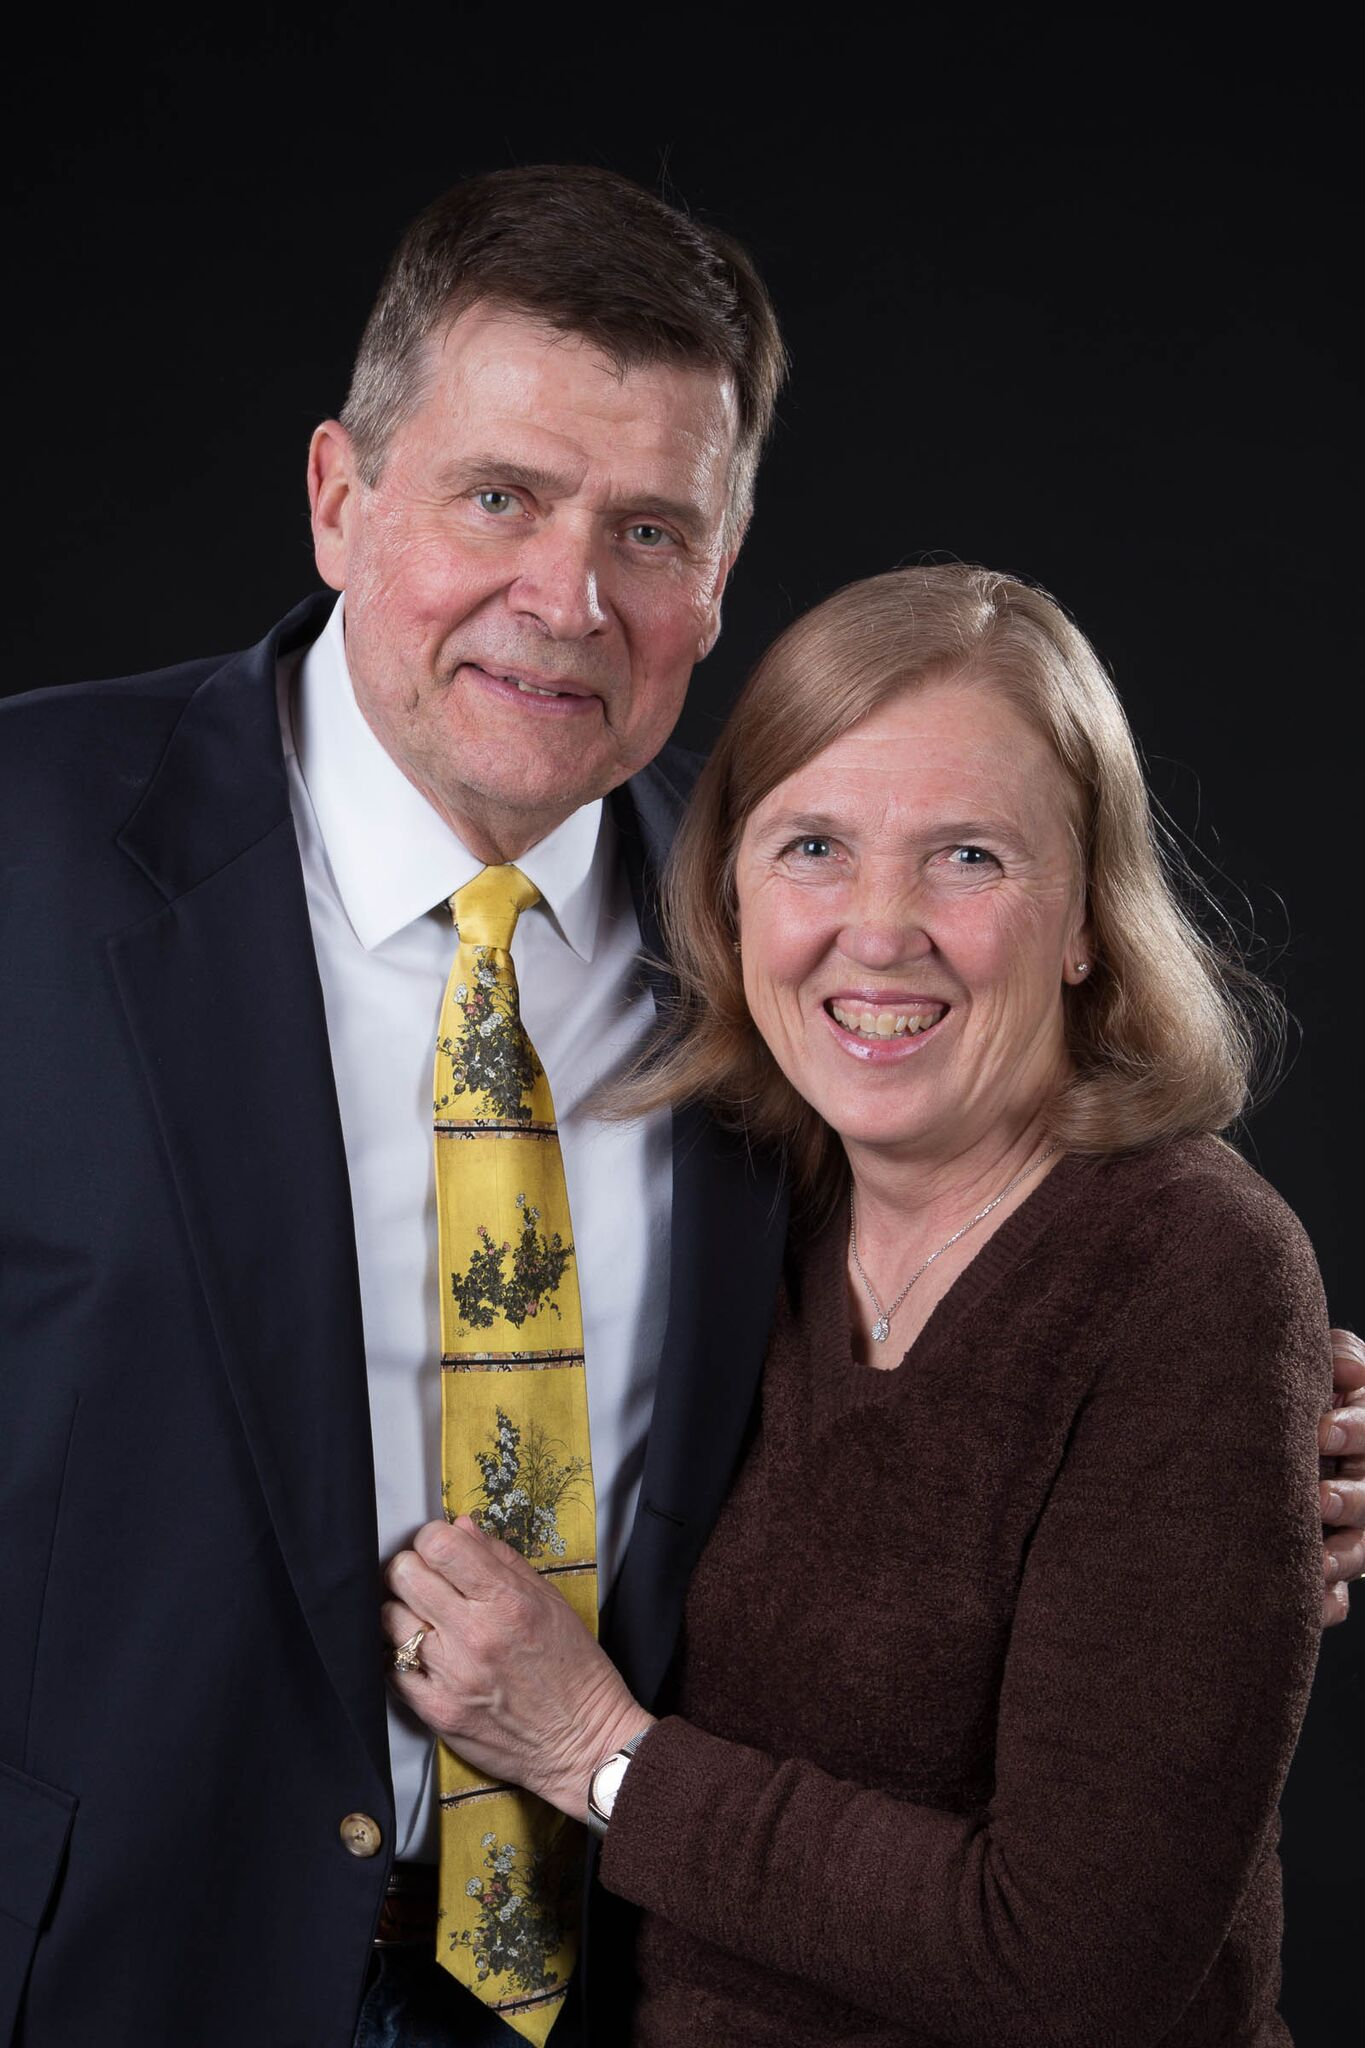 Dave And Valerie Johnson